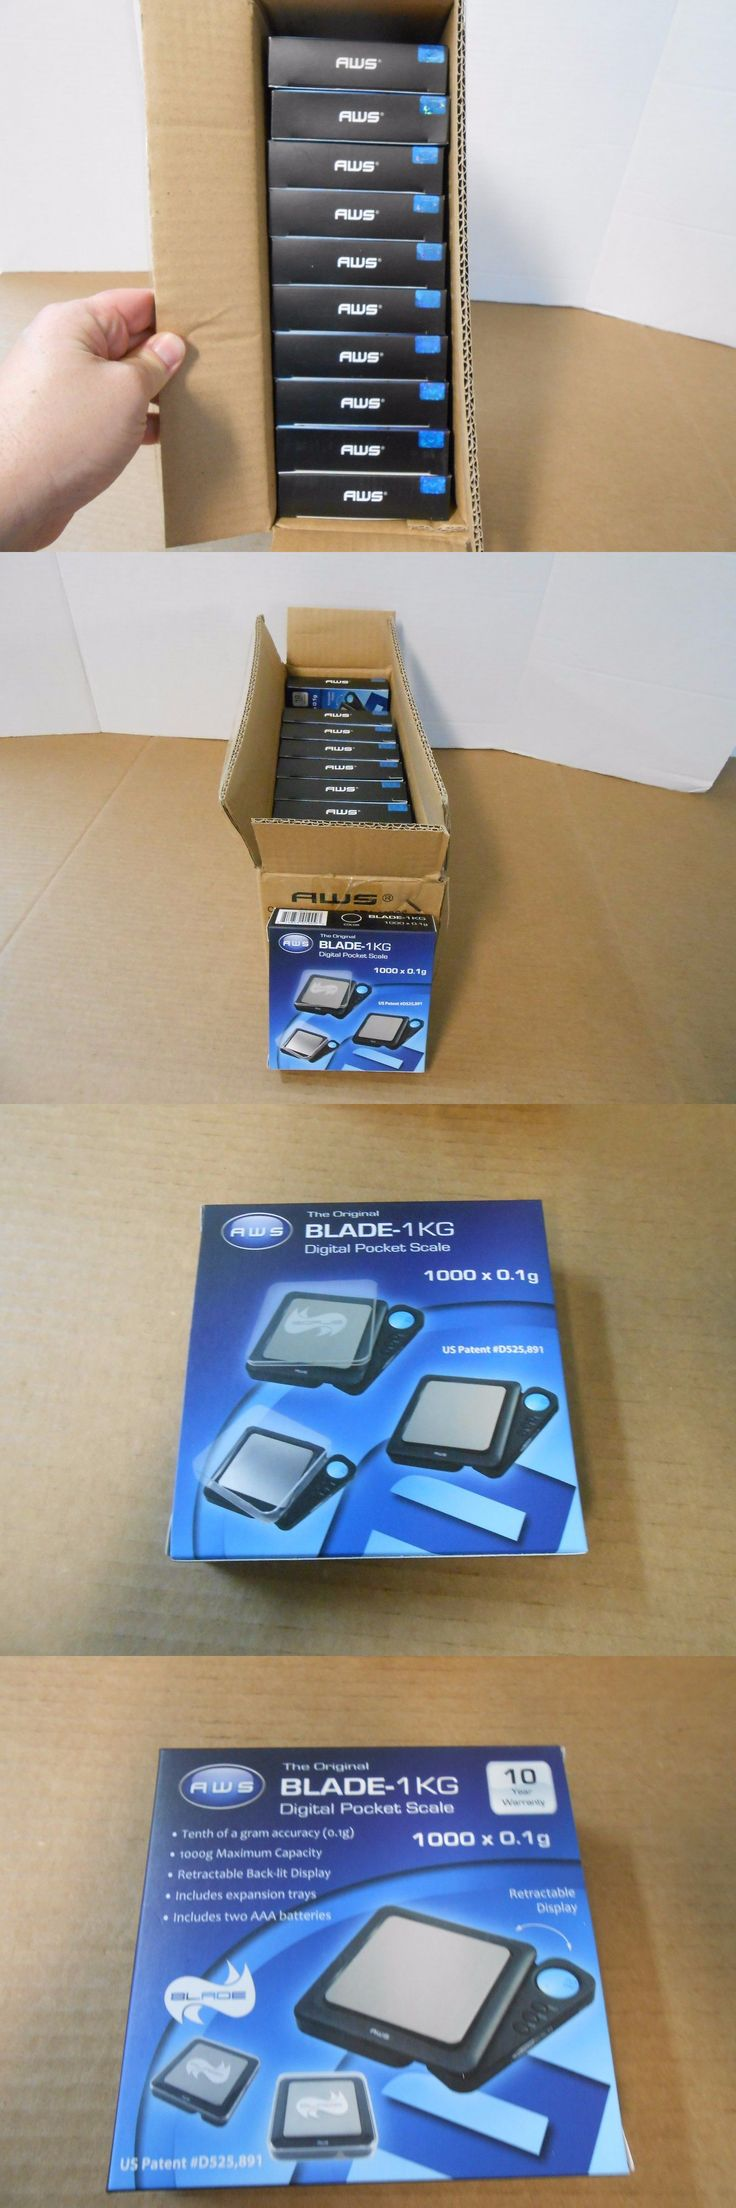 Pocket Digital Scales: Lot Of 10 New In Box American Weigh Scales Bl-1Kg-Blk Blade Digital Pocket Scale -> BUY IT NOW ONLY: $79.99 on eBay!